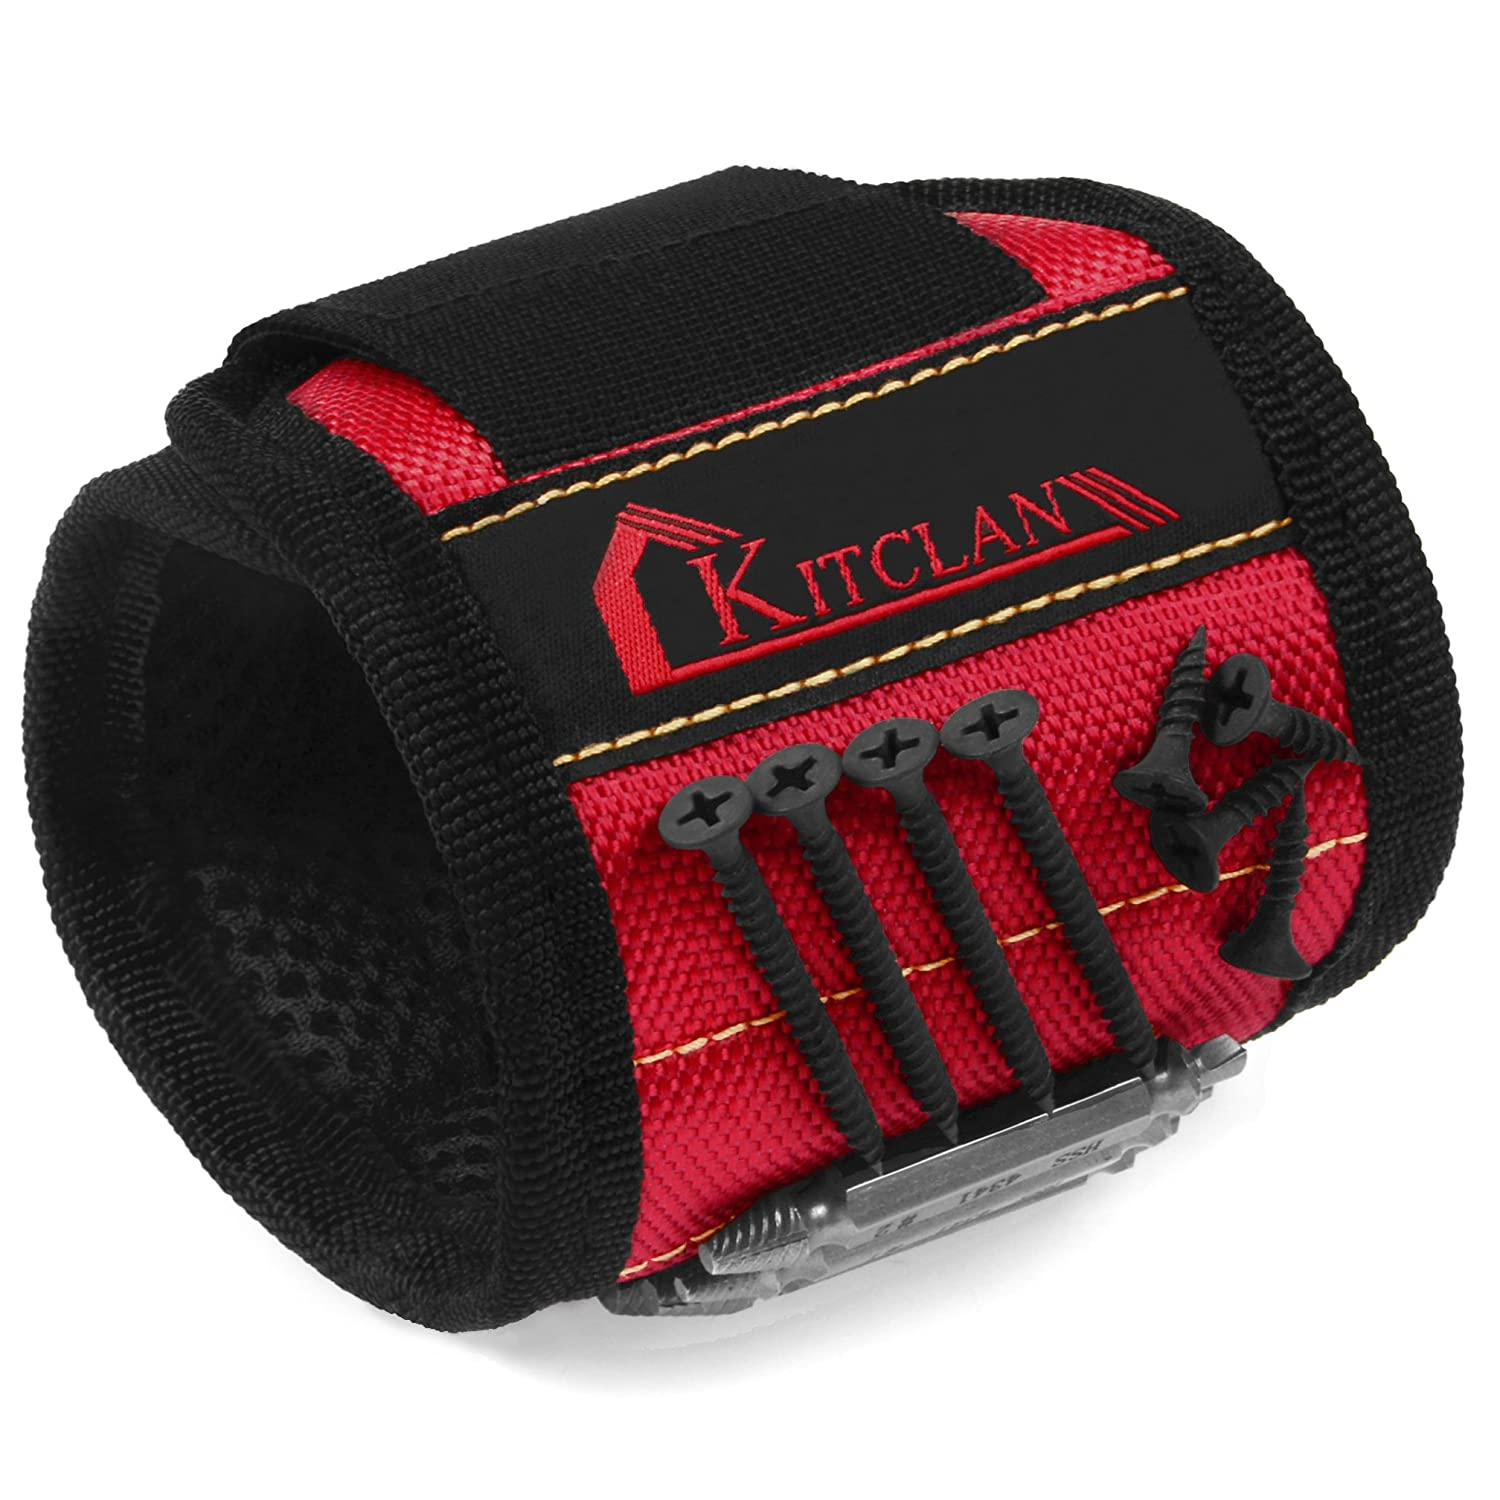 Magnetic Wristband Kitclan Magnet Wristband with 5 Powerful Magnets Adjustable Velcro Strap for Holding Tools Screws Nails Small tools Gifts for Men Fathers Handymen DIY